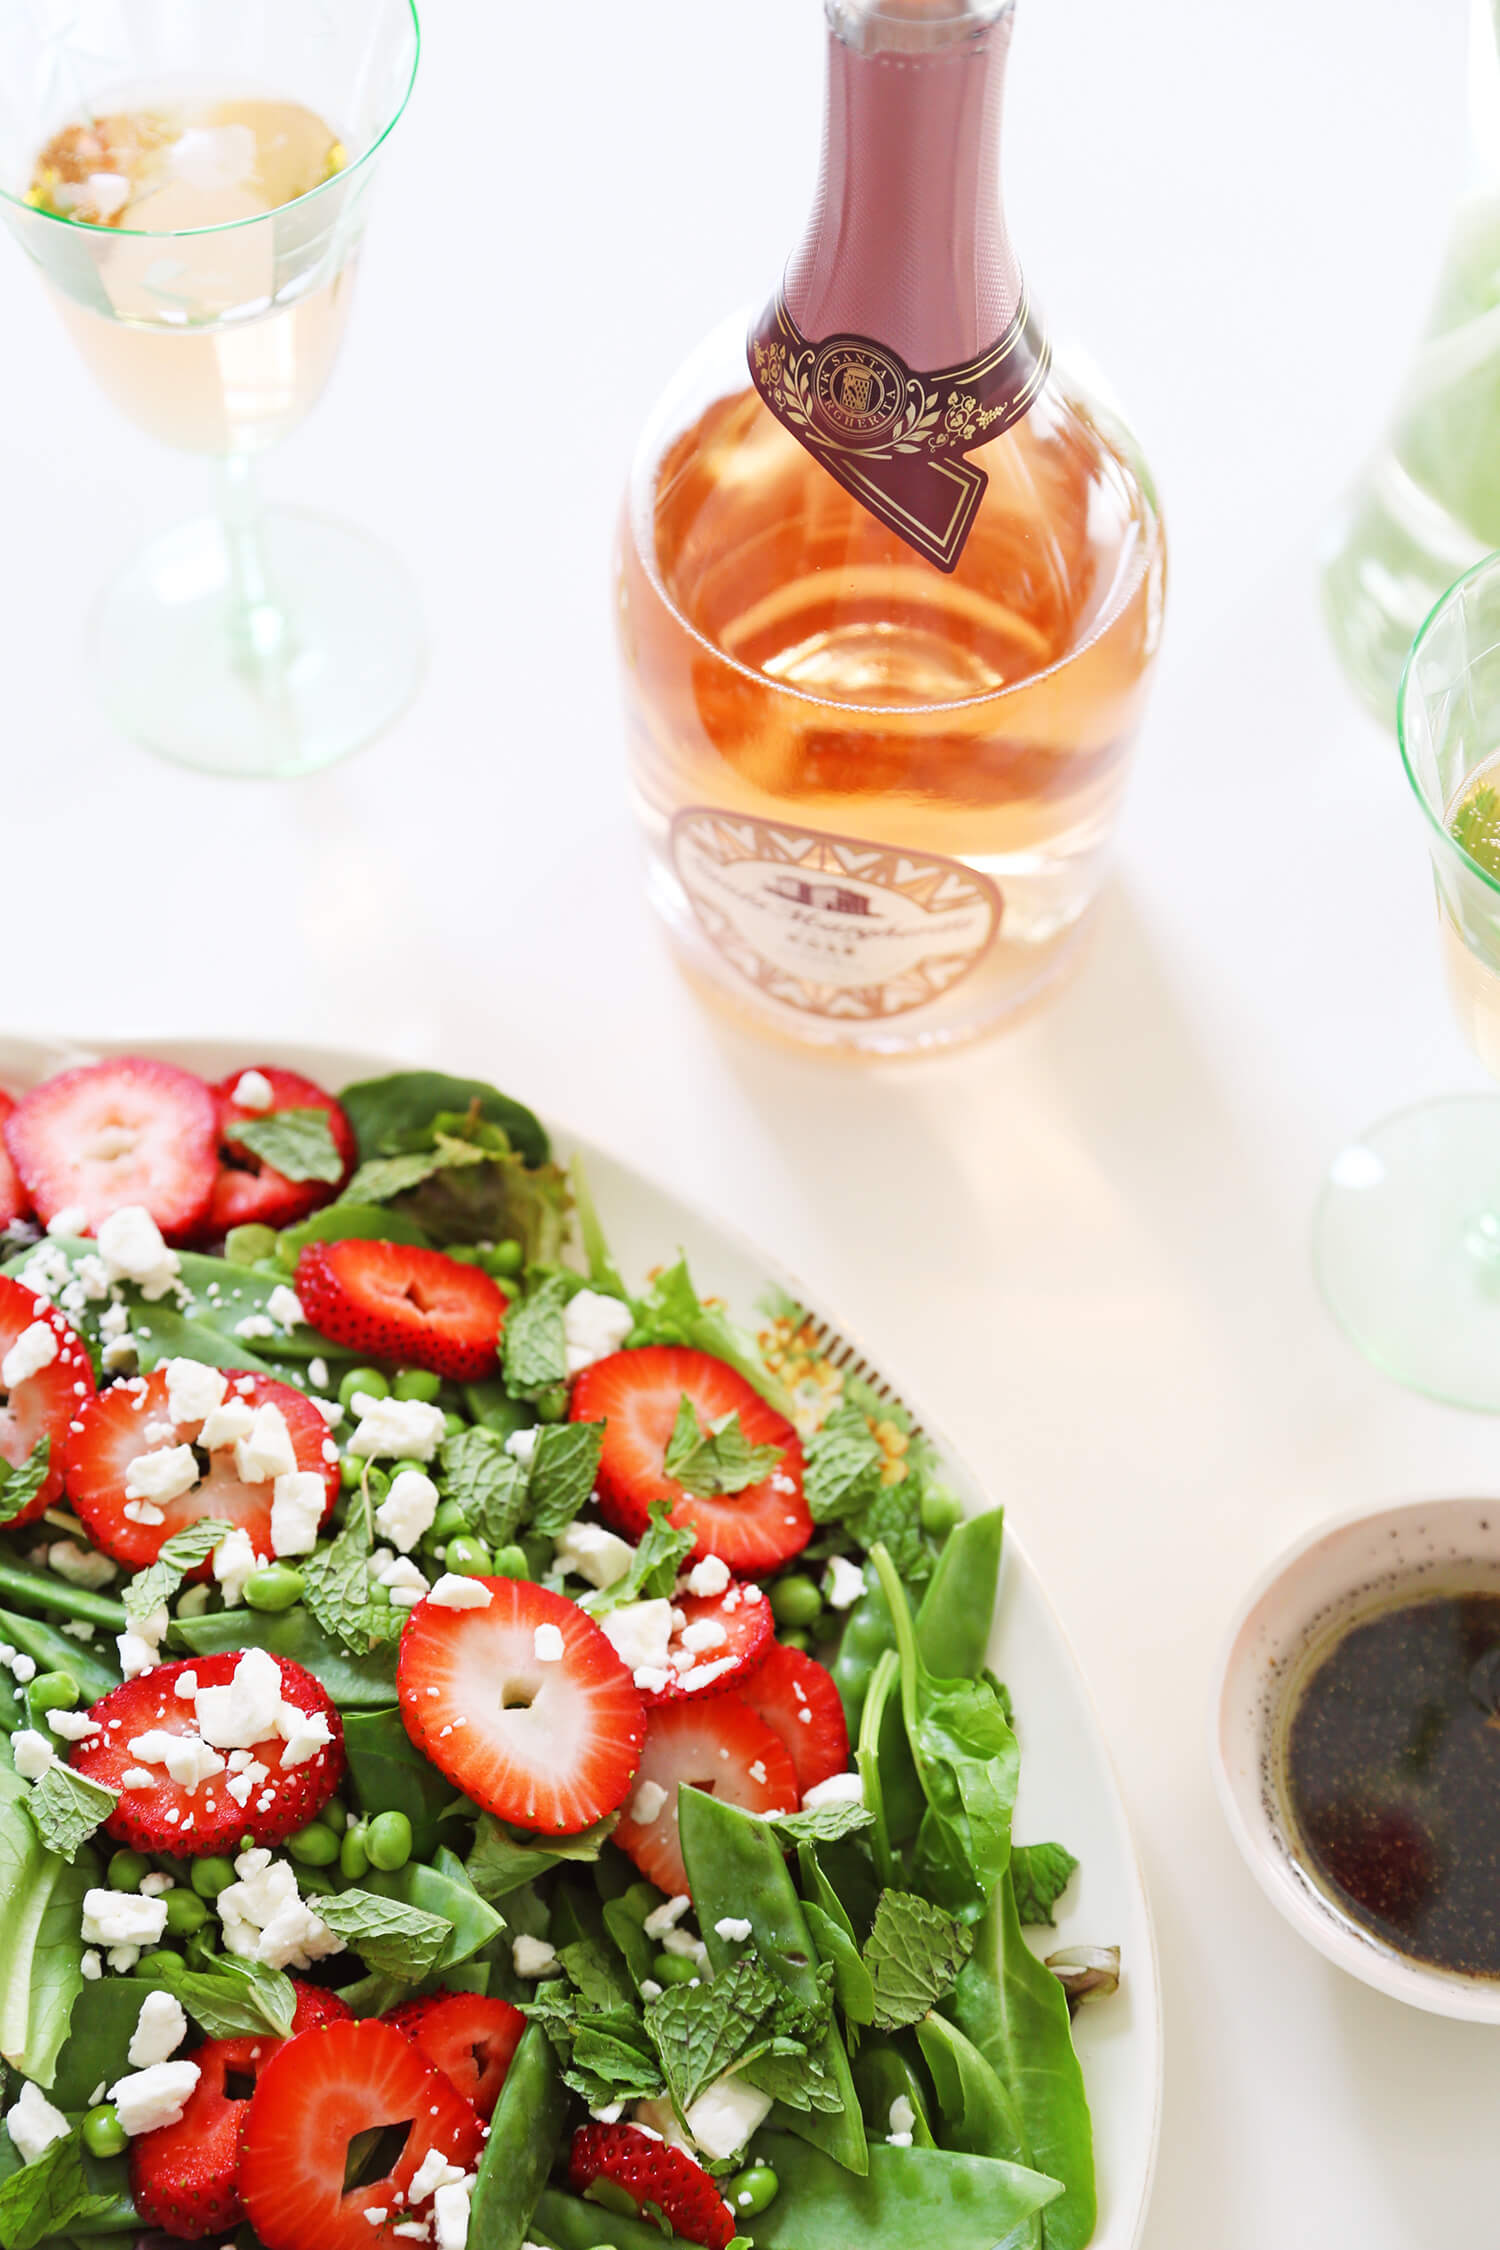 Food + Wine Pairing for Spring Entertaining